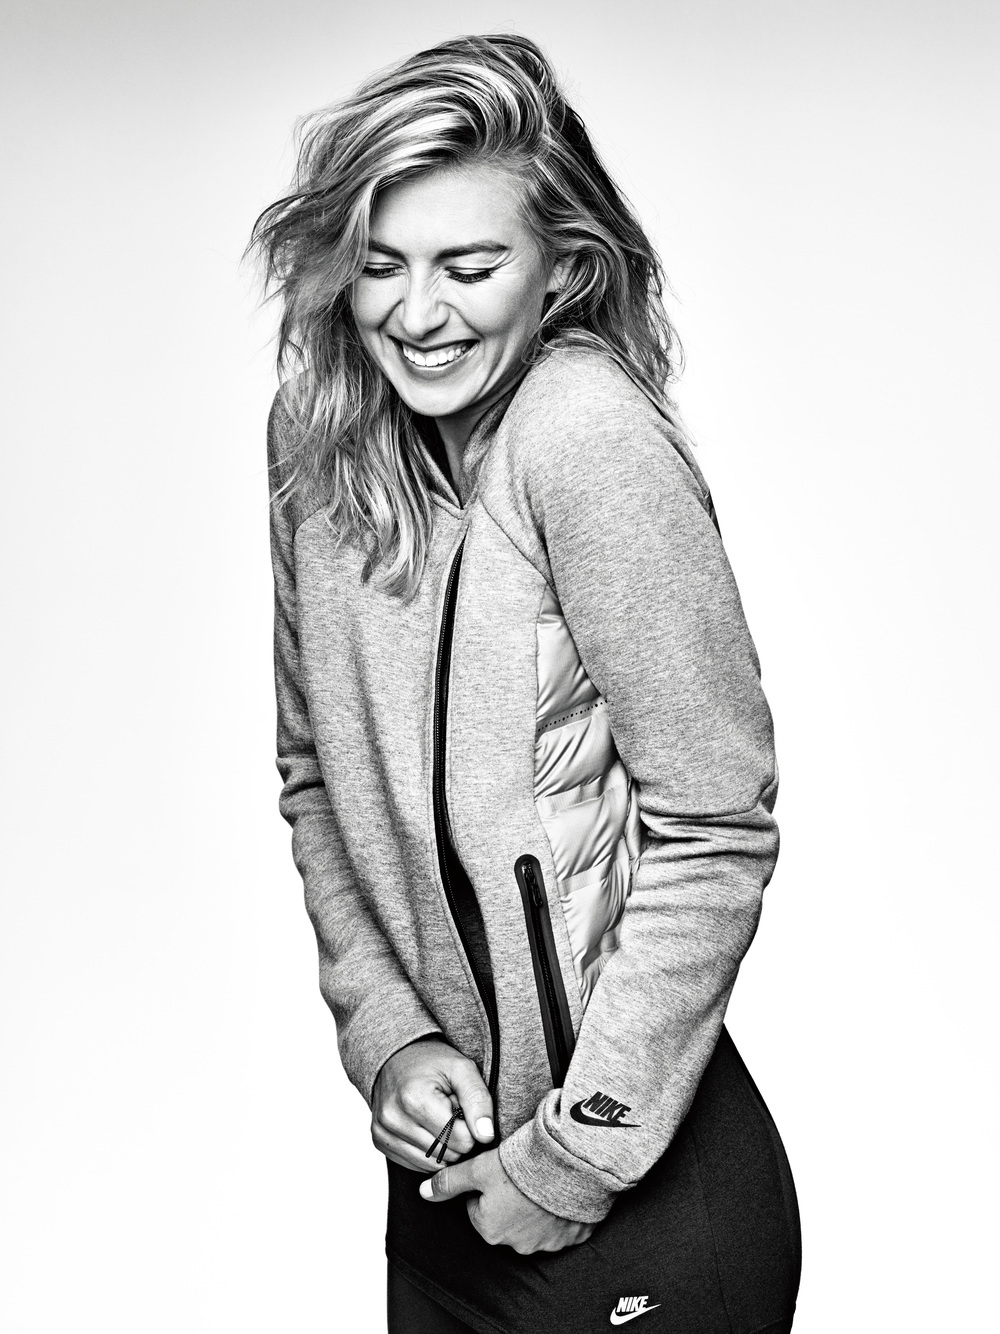 HO15_NSW_Tech_Pack_MSharapova_01_47279.jpg